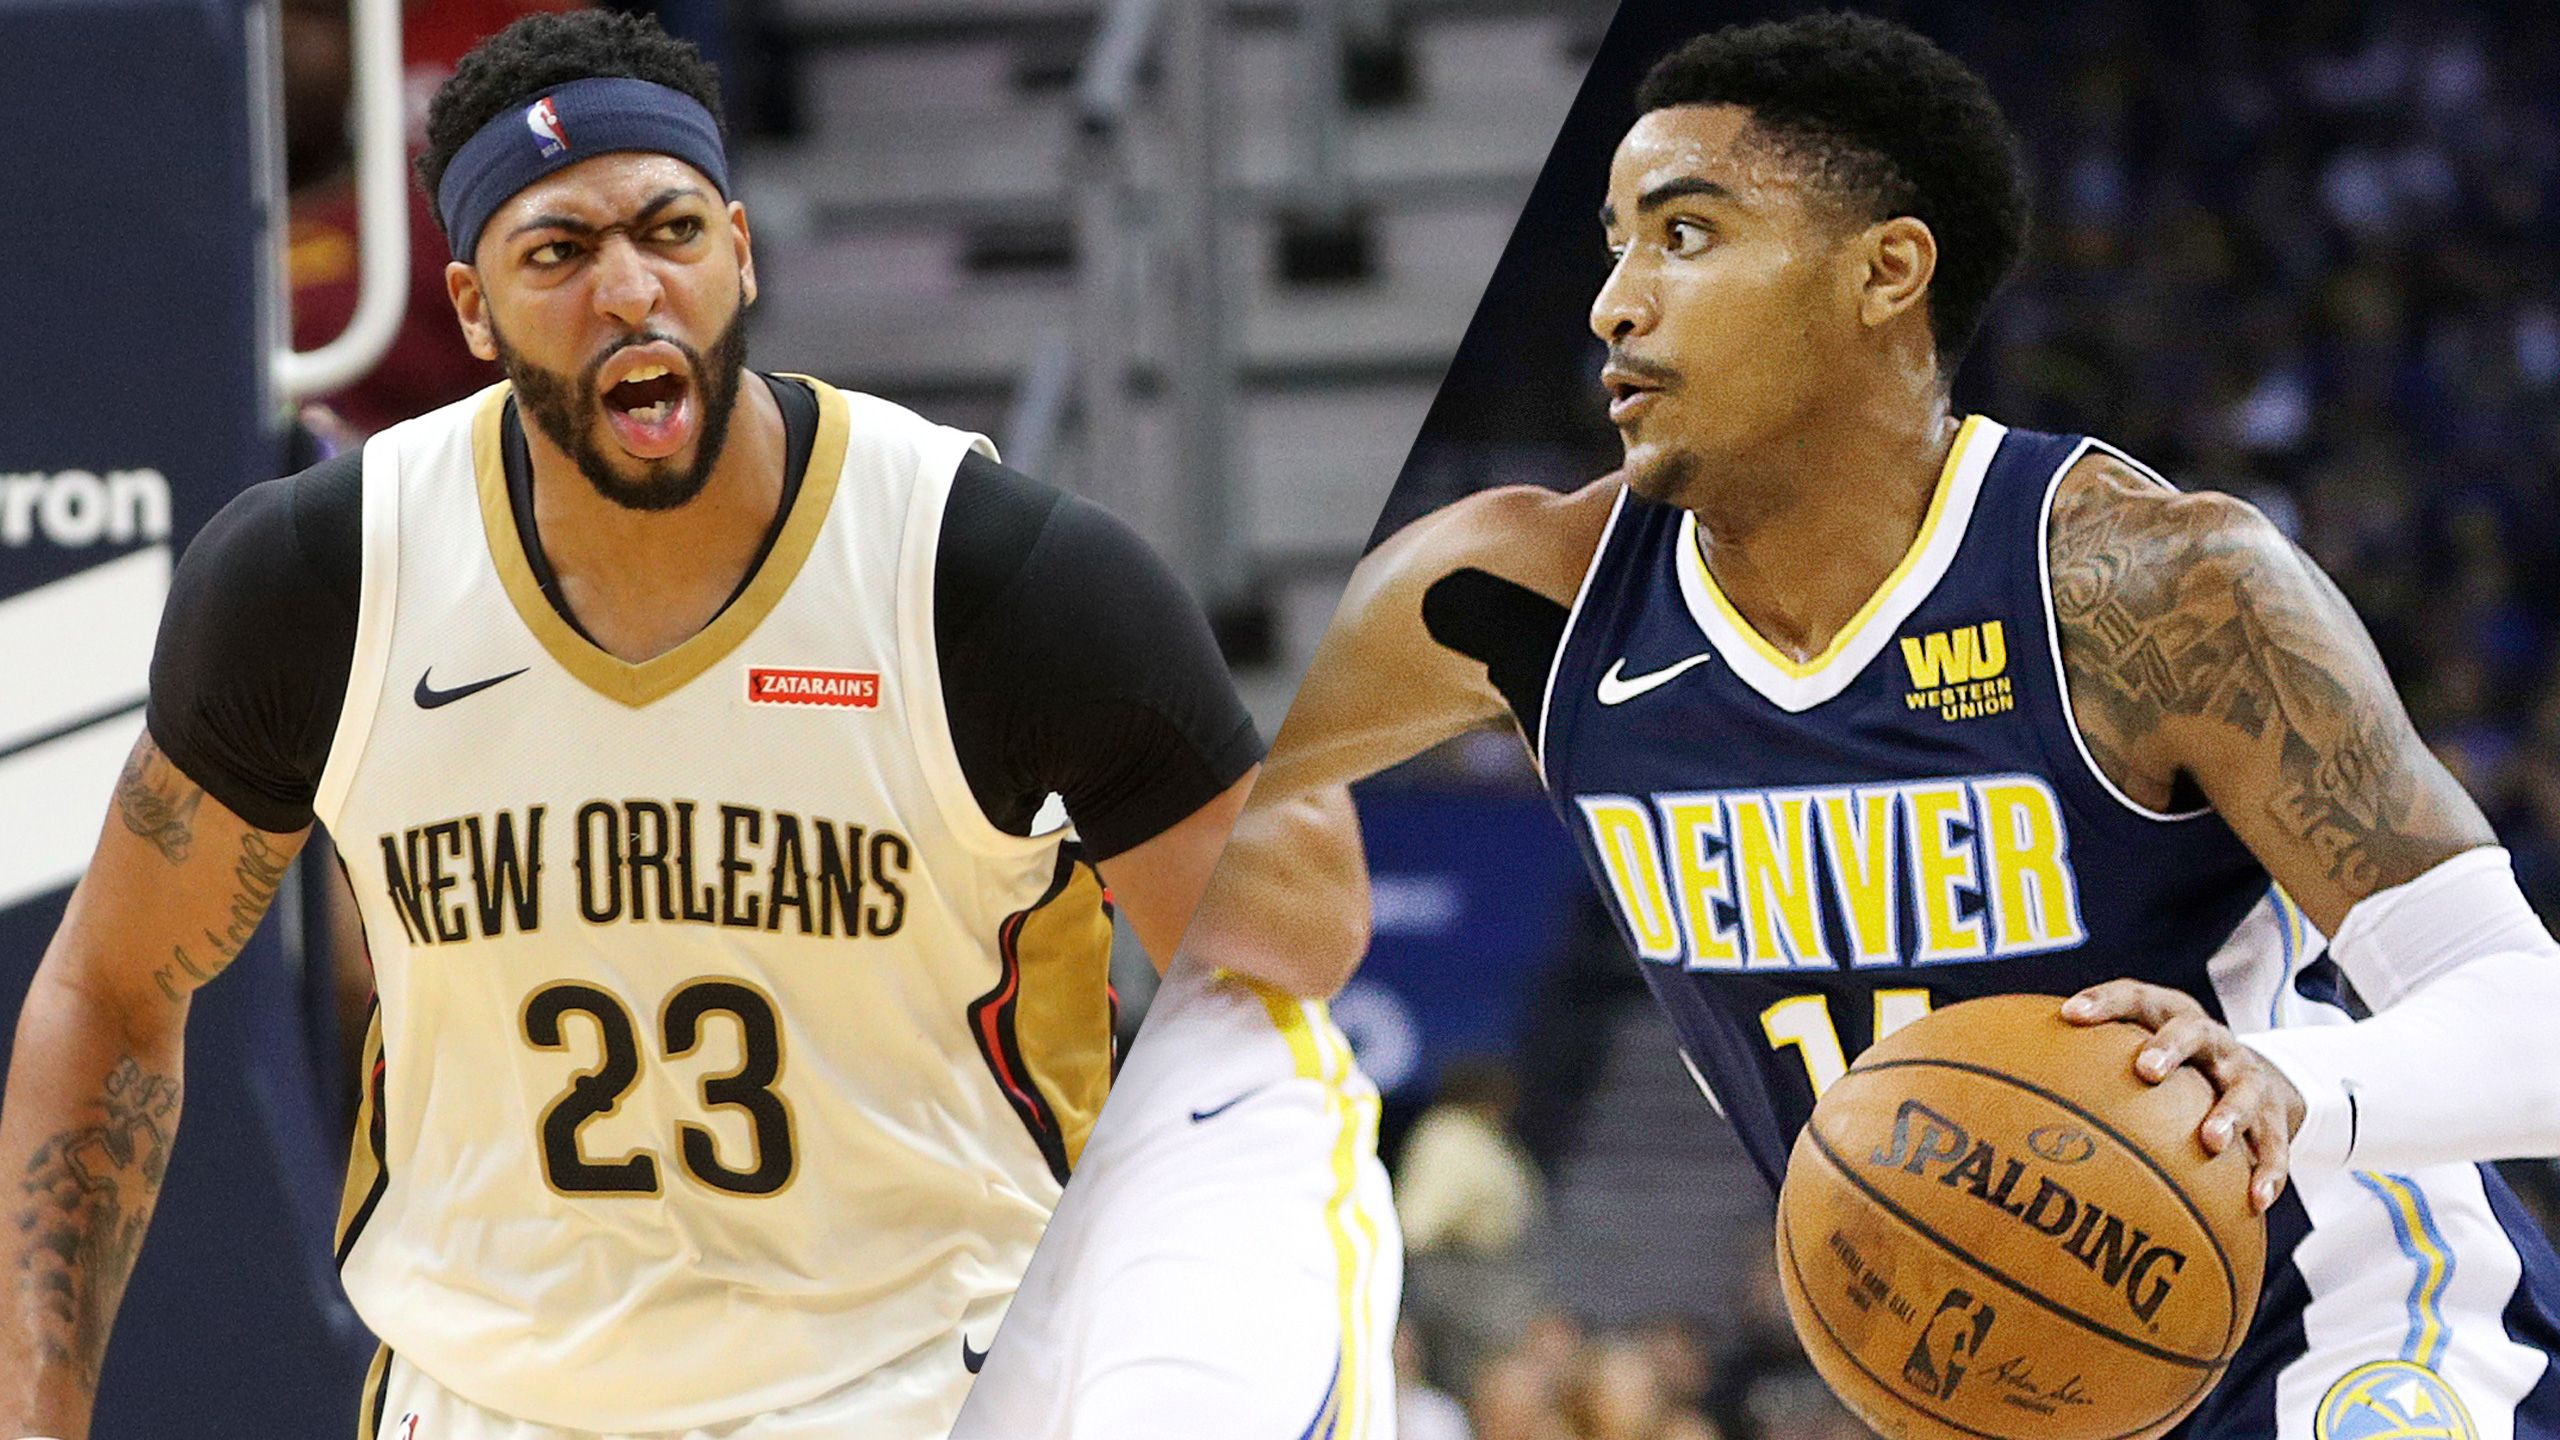 New Orleans Pelicans vs. Denver Nuggets (re-air)